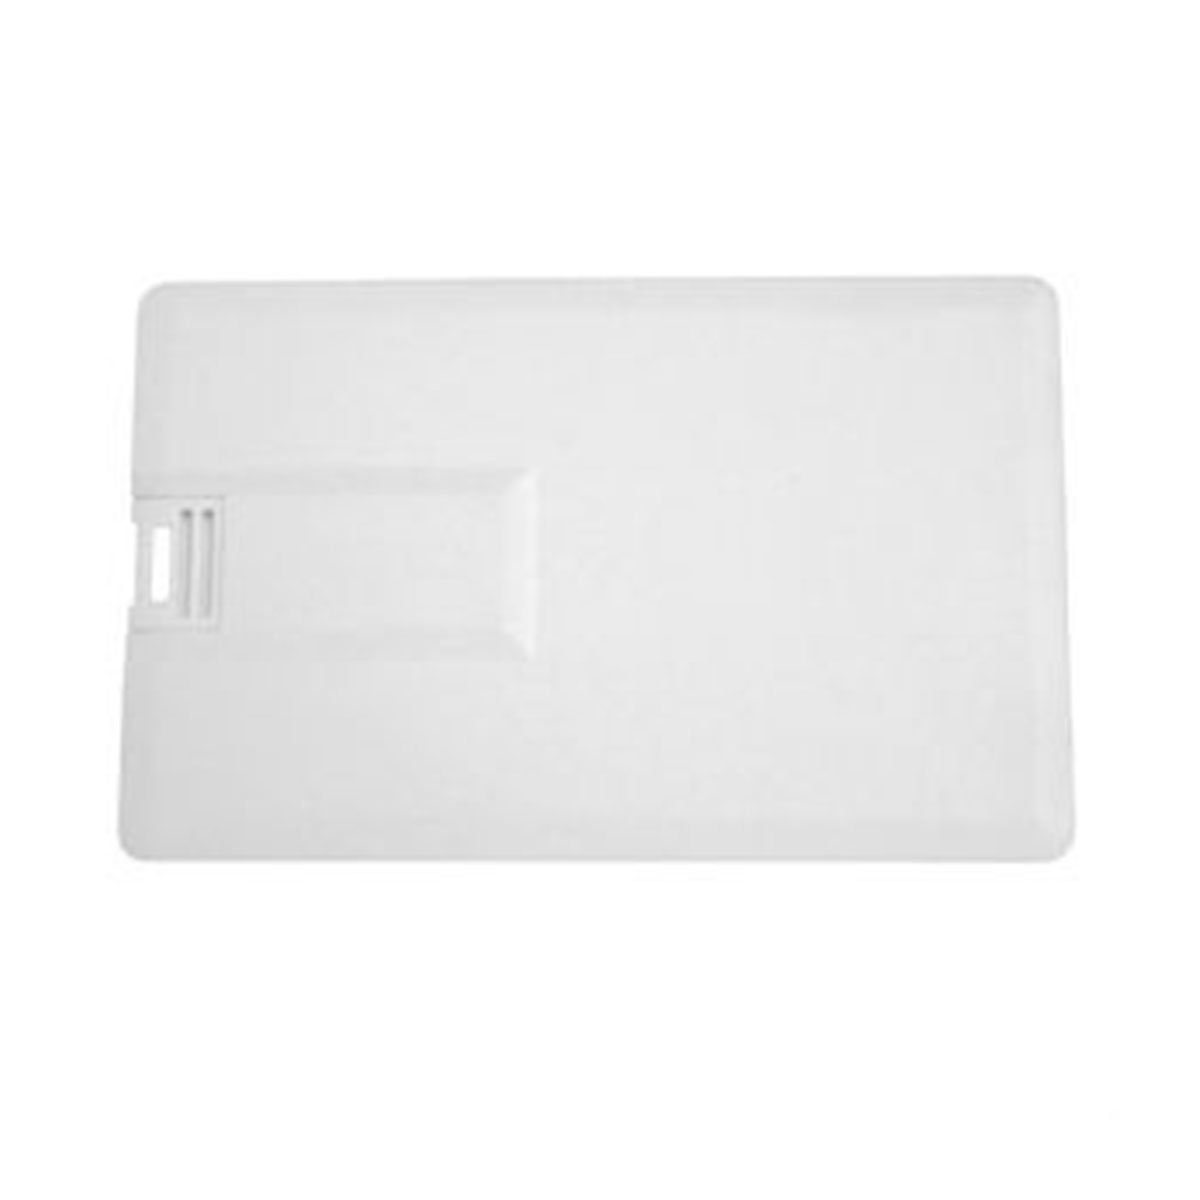 Superslim Credit Card 4G White-White